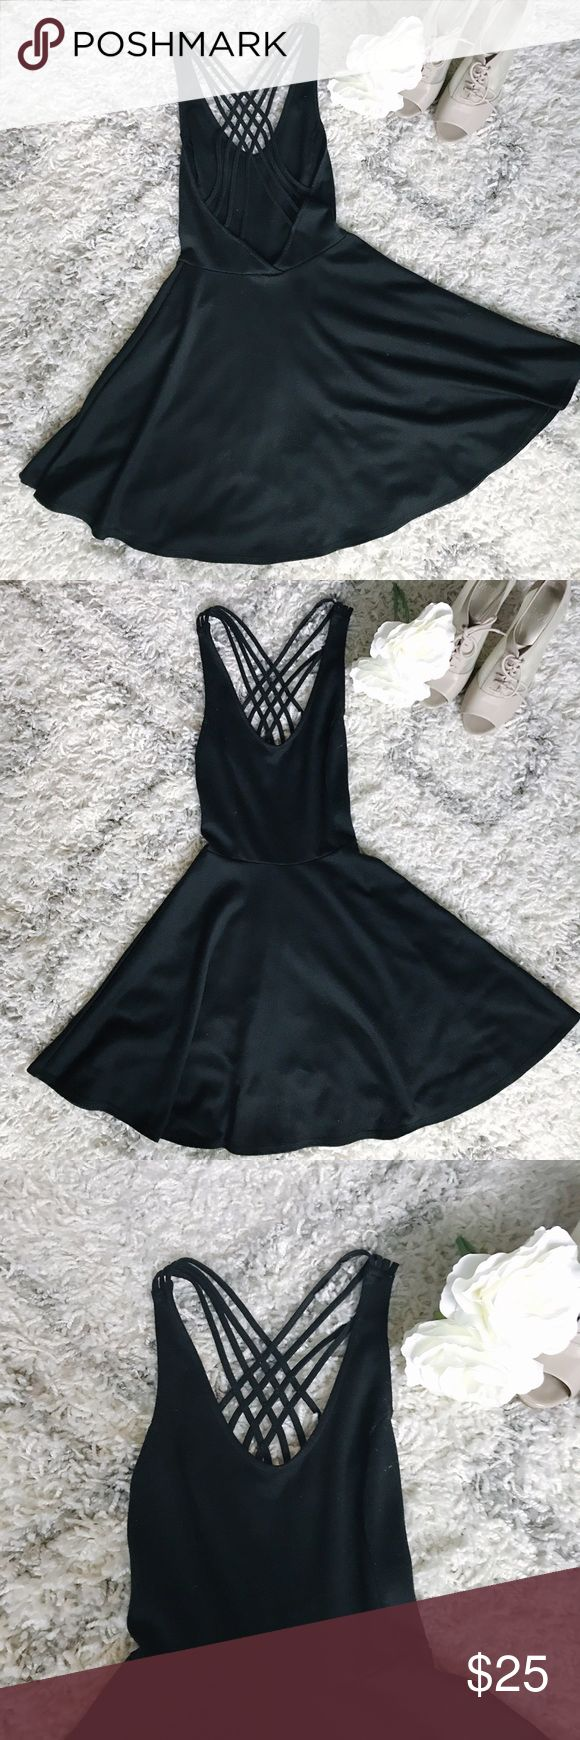 Lush Black Skater Dress w/ Low Criss-cross Back The perfect LBD by Lush (sold at Nordstrom). Skater dress cut gives this dress nice flow. Amazing criss-cross back. Falls above the knee. 88% polyester. 8% rayon. 4% spandex. Size XS. Lush Dresses Mini